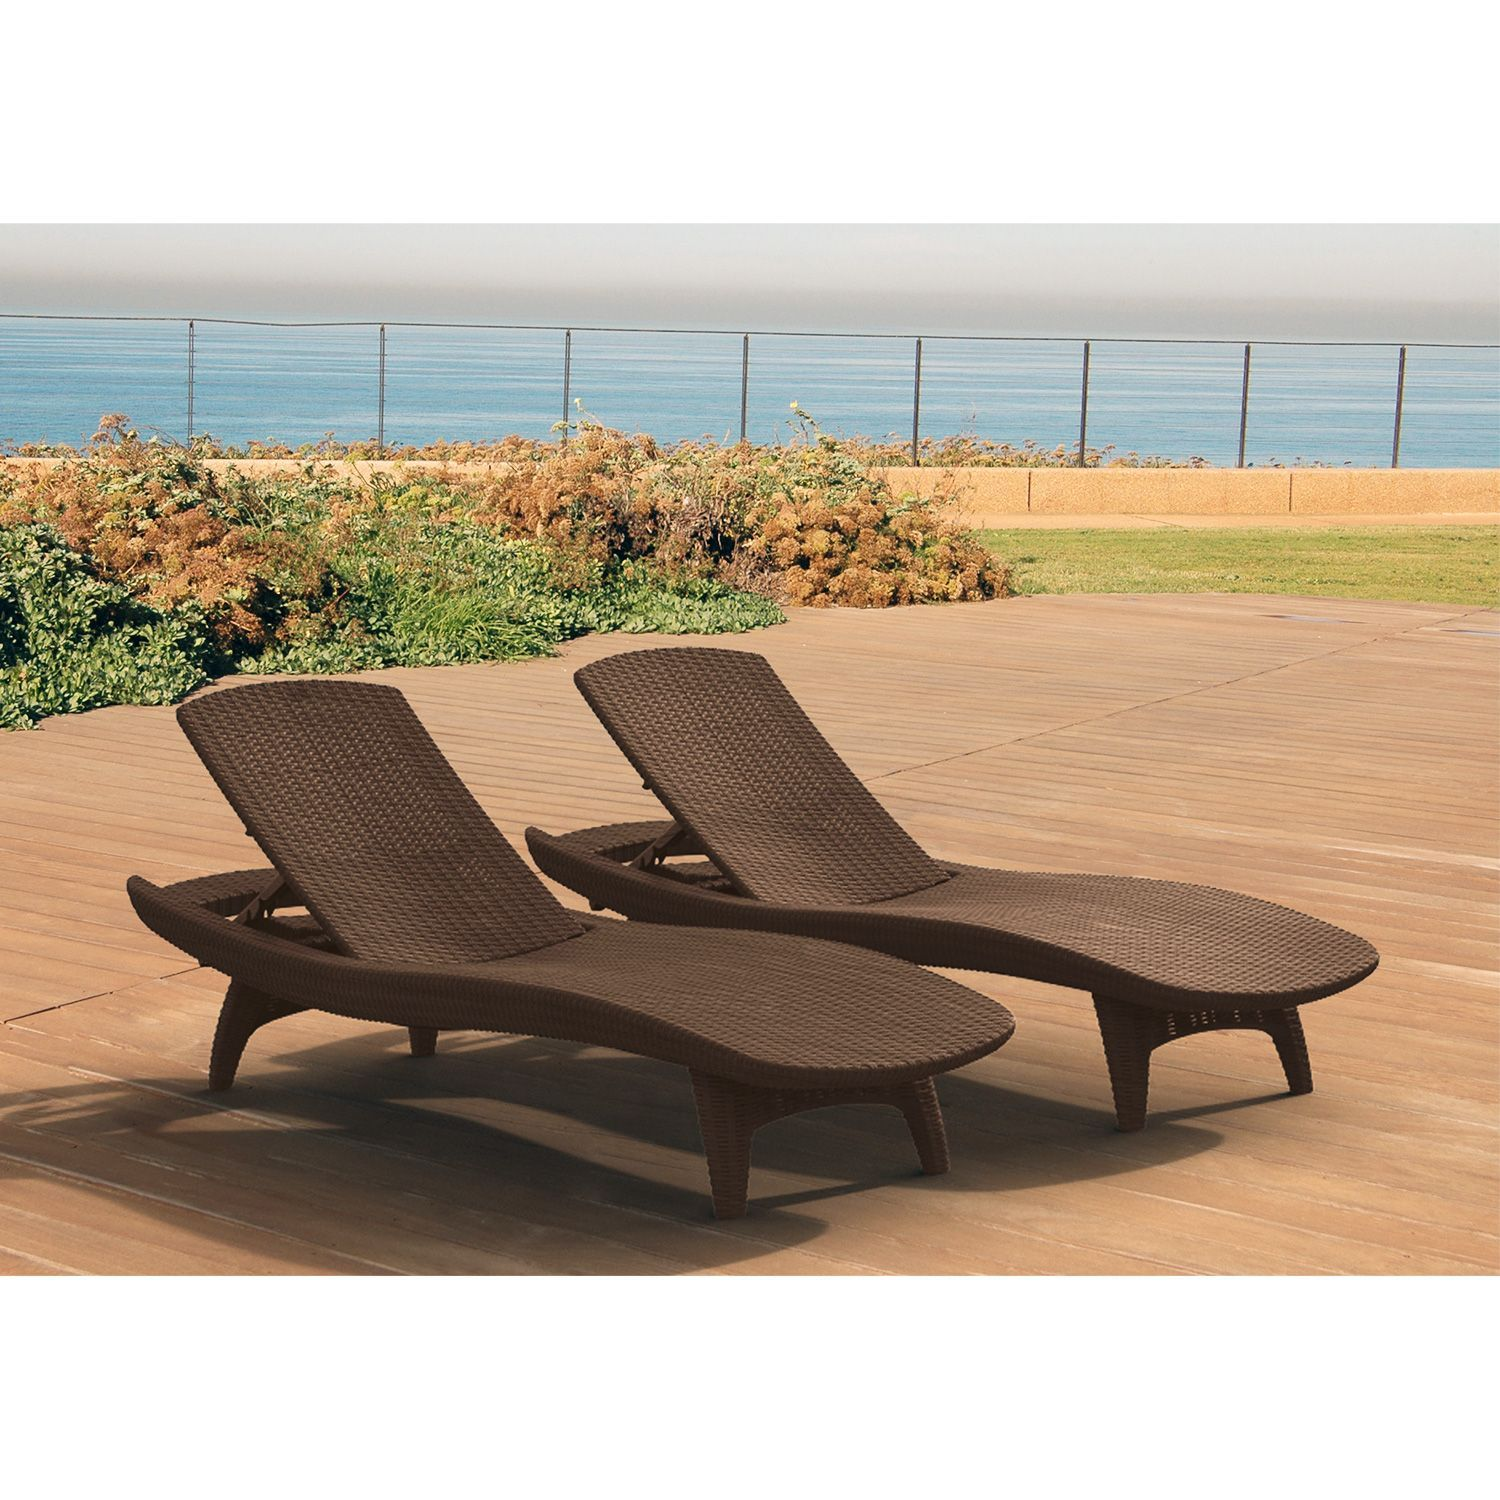 Keter Rattan Chaise Lounge 2pk Brown Sam S Club Lounge Chair Outdoor Patio Lounge Chairs Outdoor Chaise Lounge